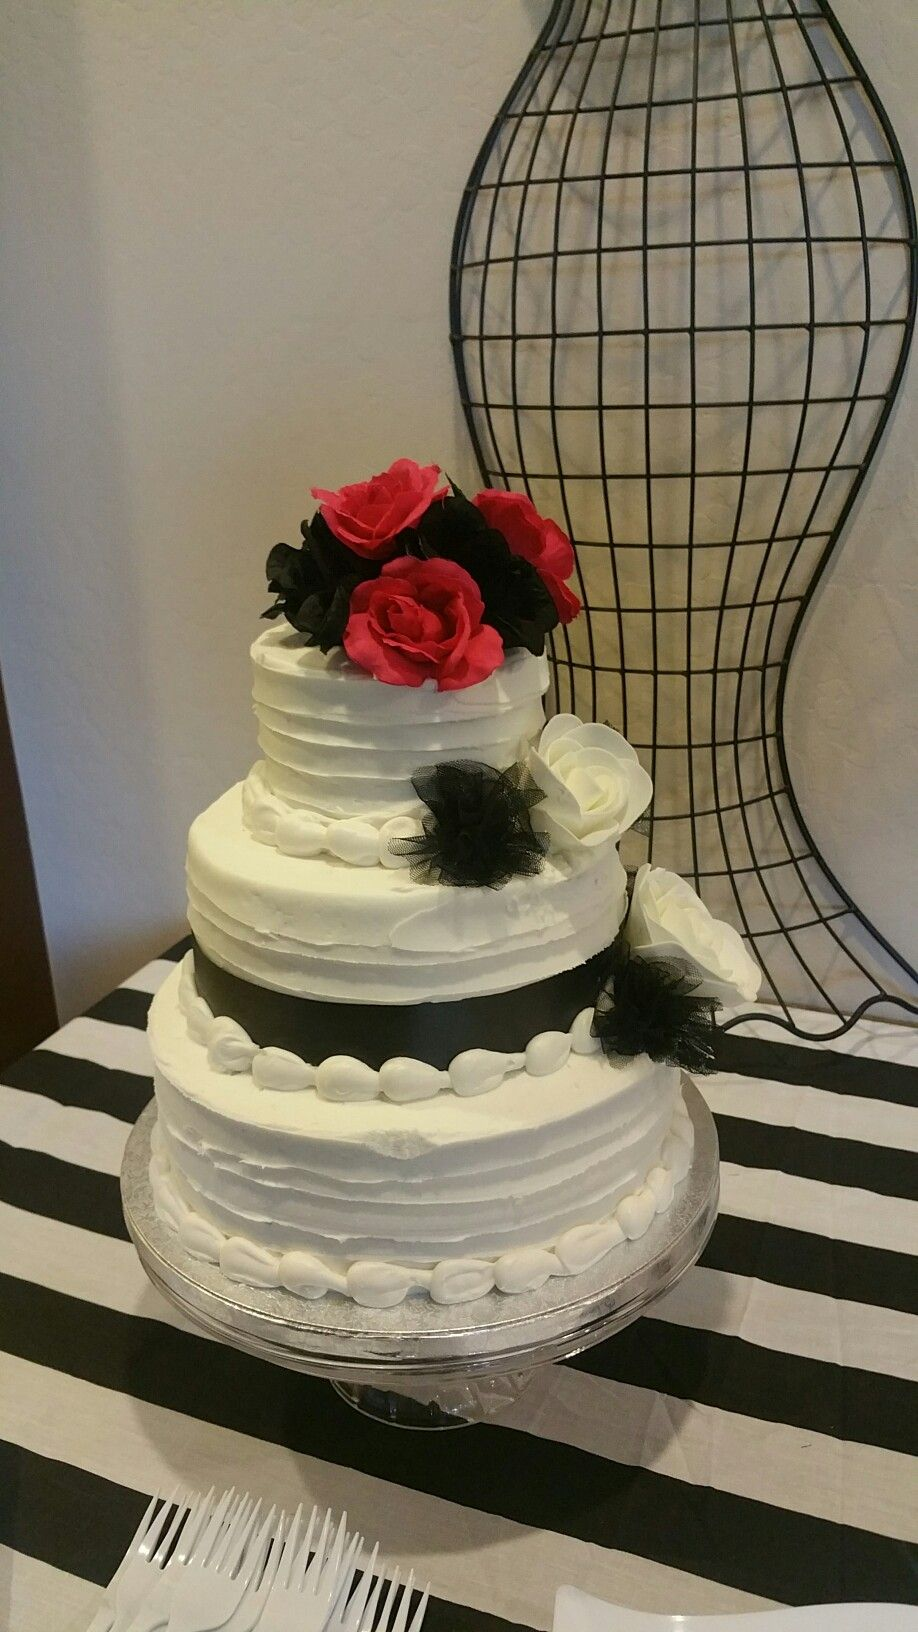 sam 39 s club wedding cakes. Black Bedroom Furniture Sets. Home Design Ideas